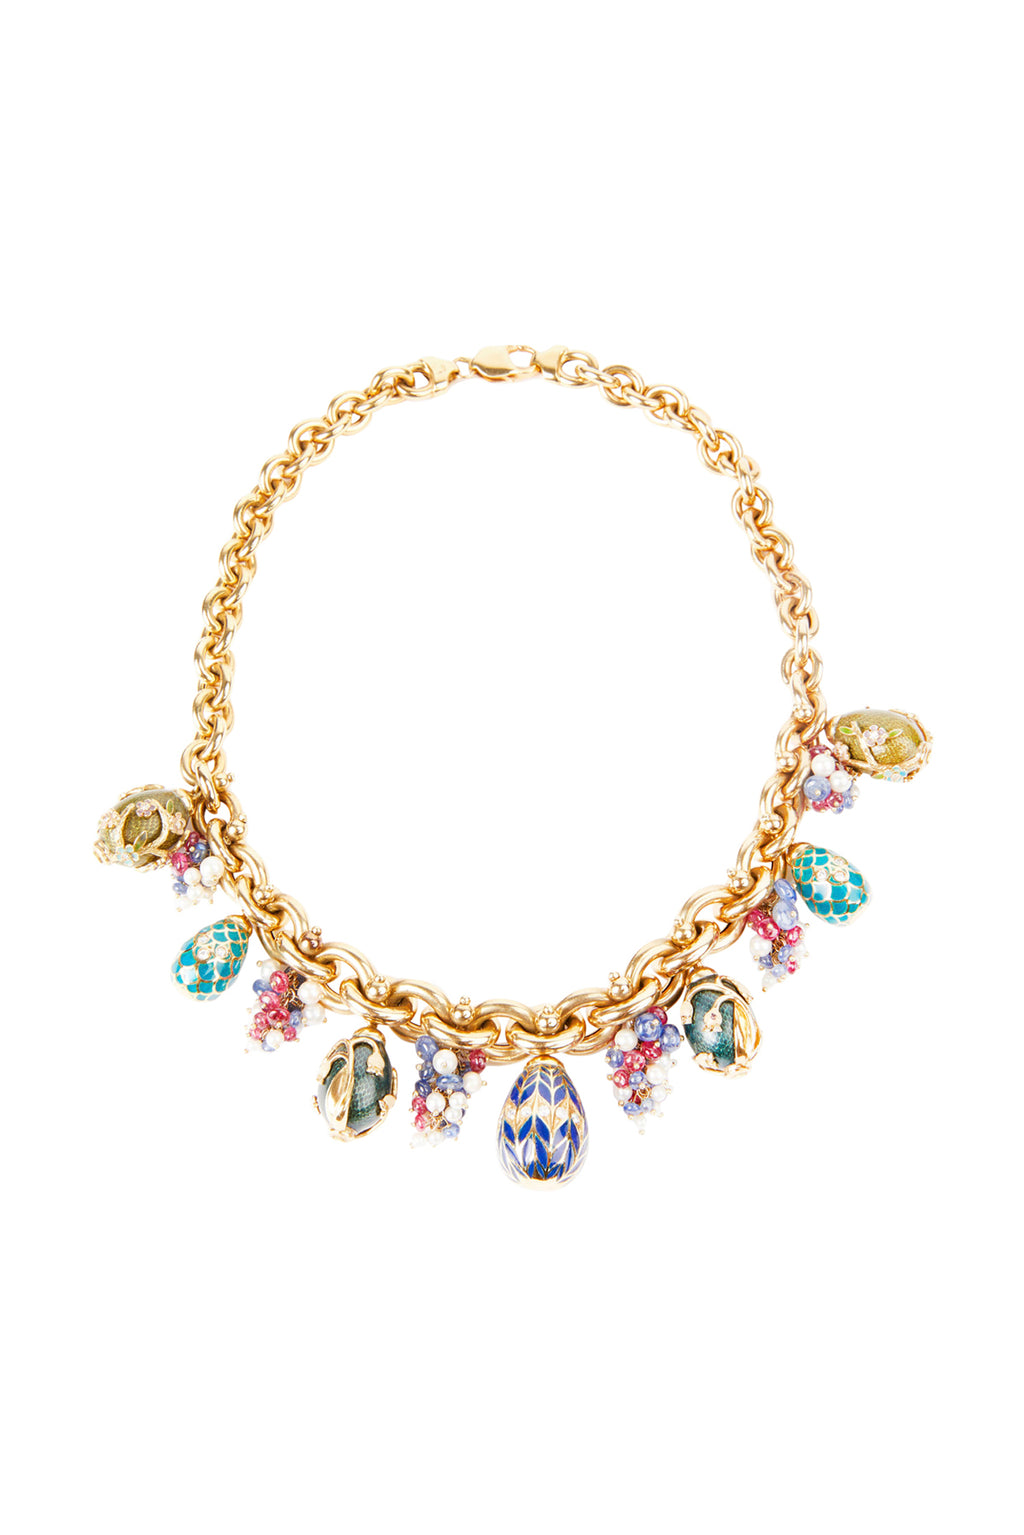 Floral Design Gold Chain Necklace